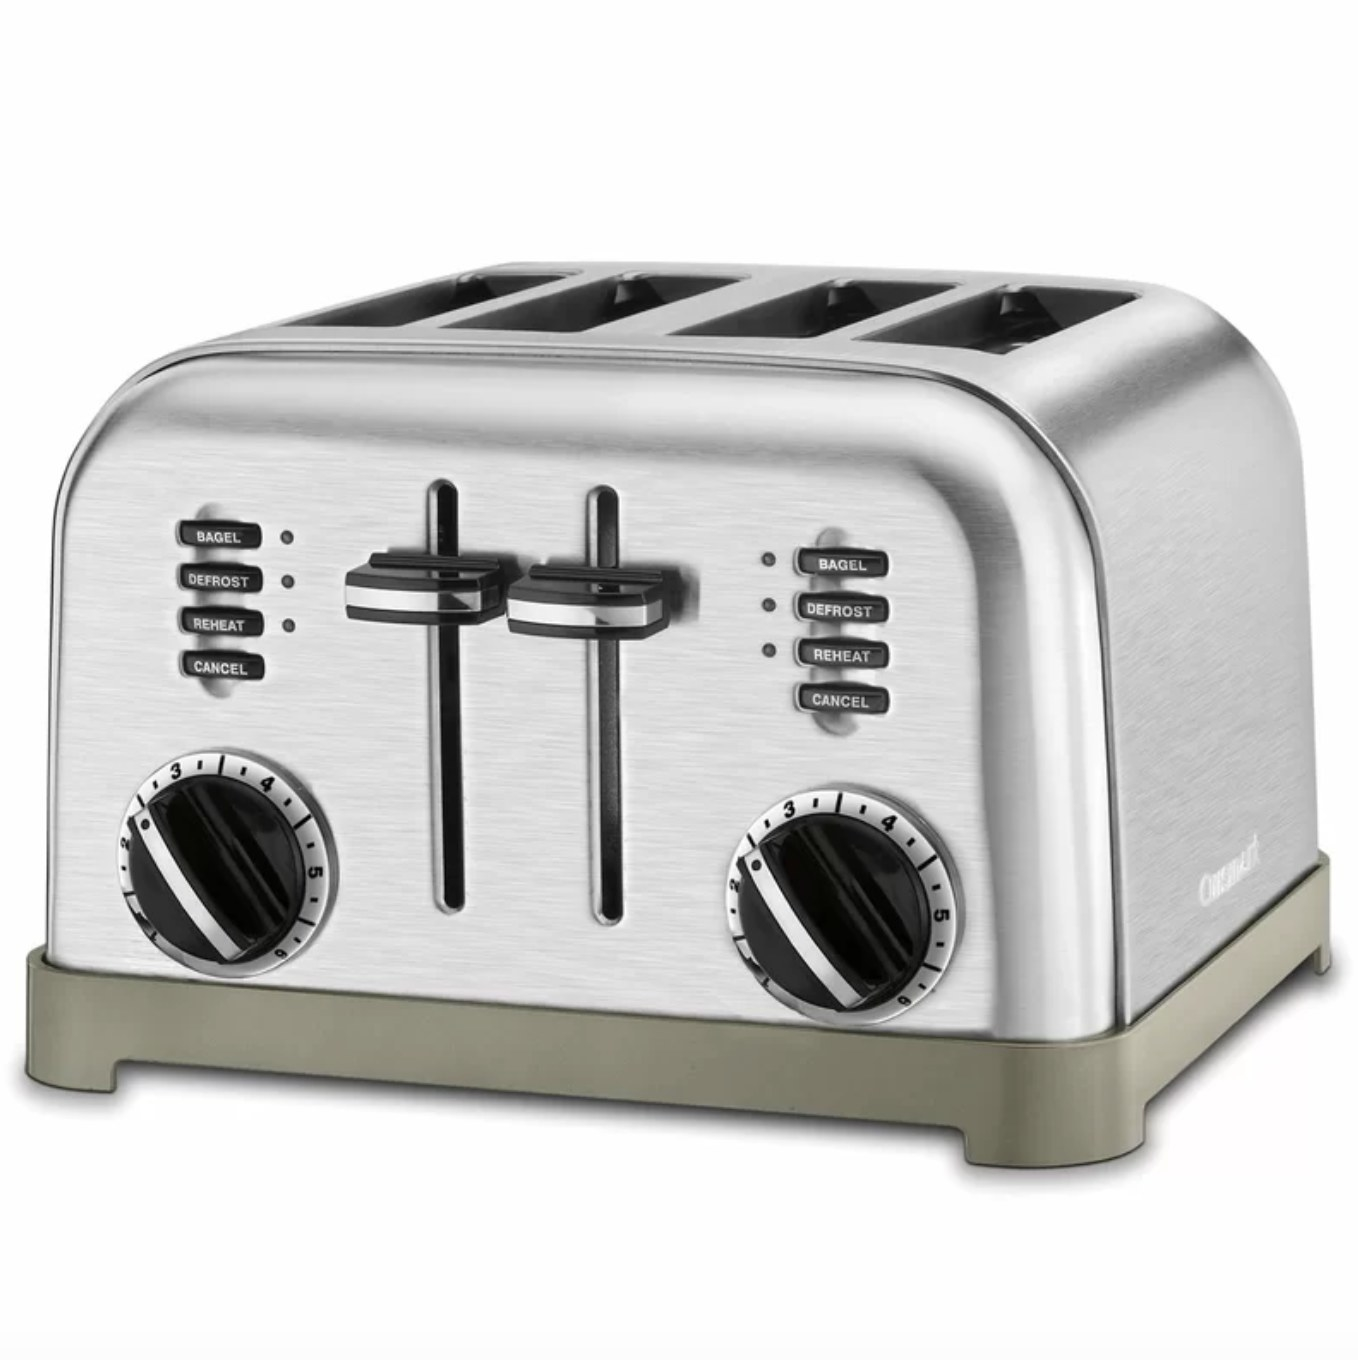 The toaster in stainless steel